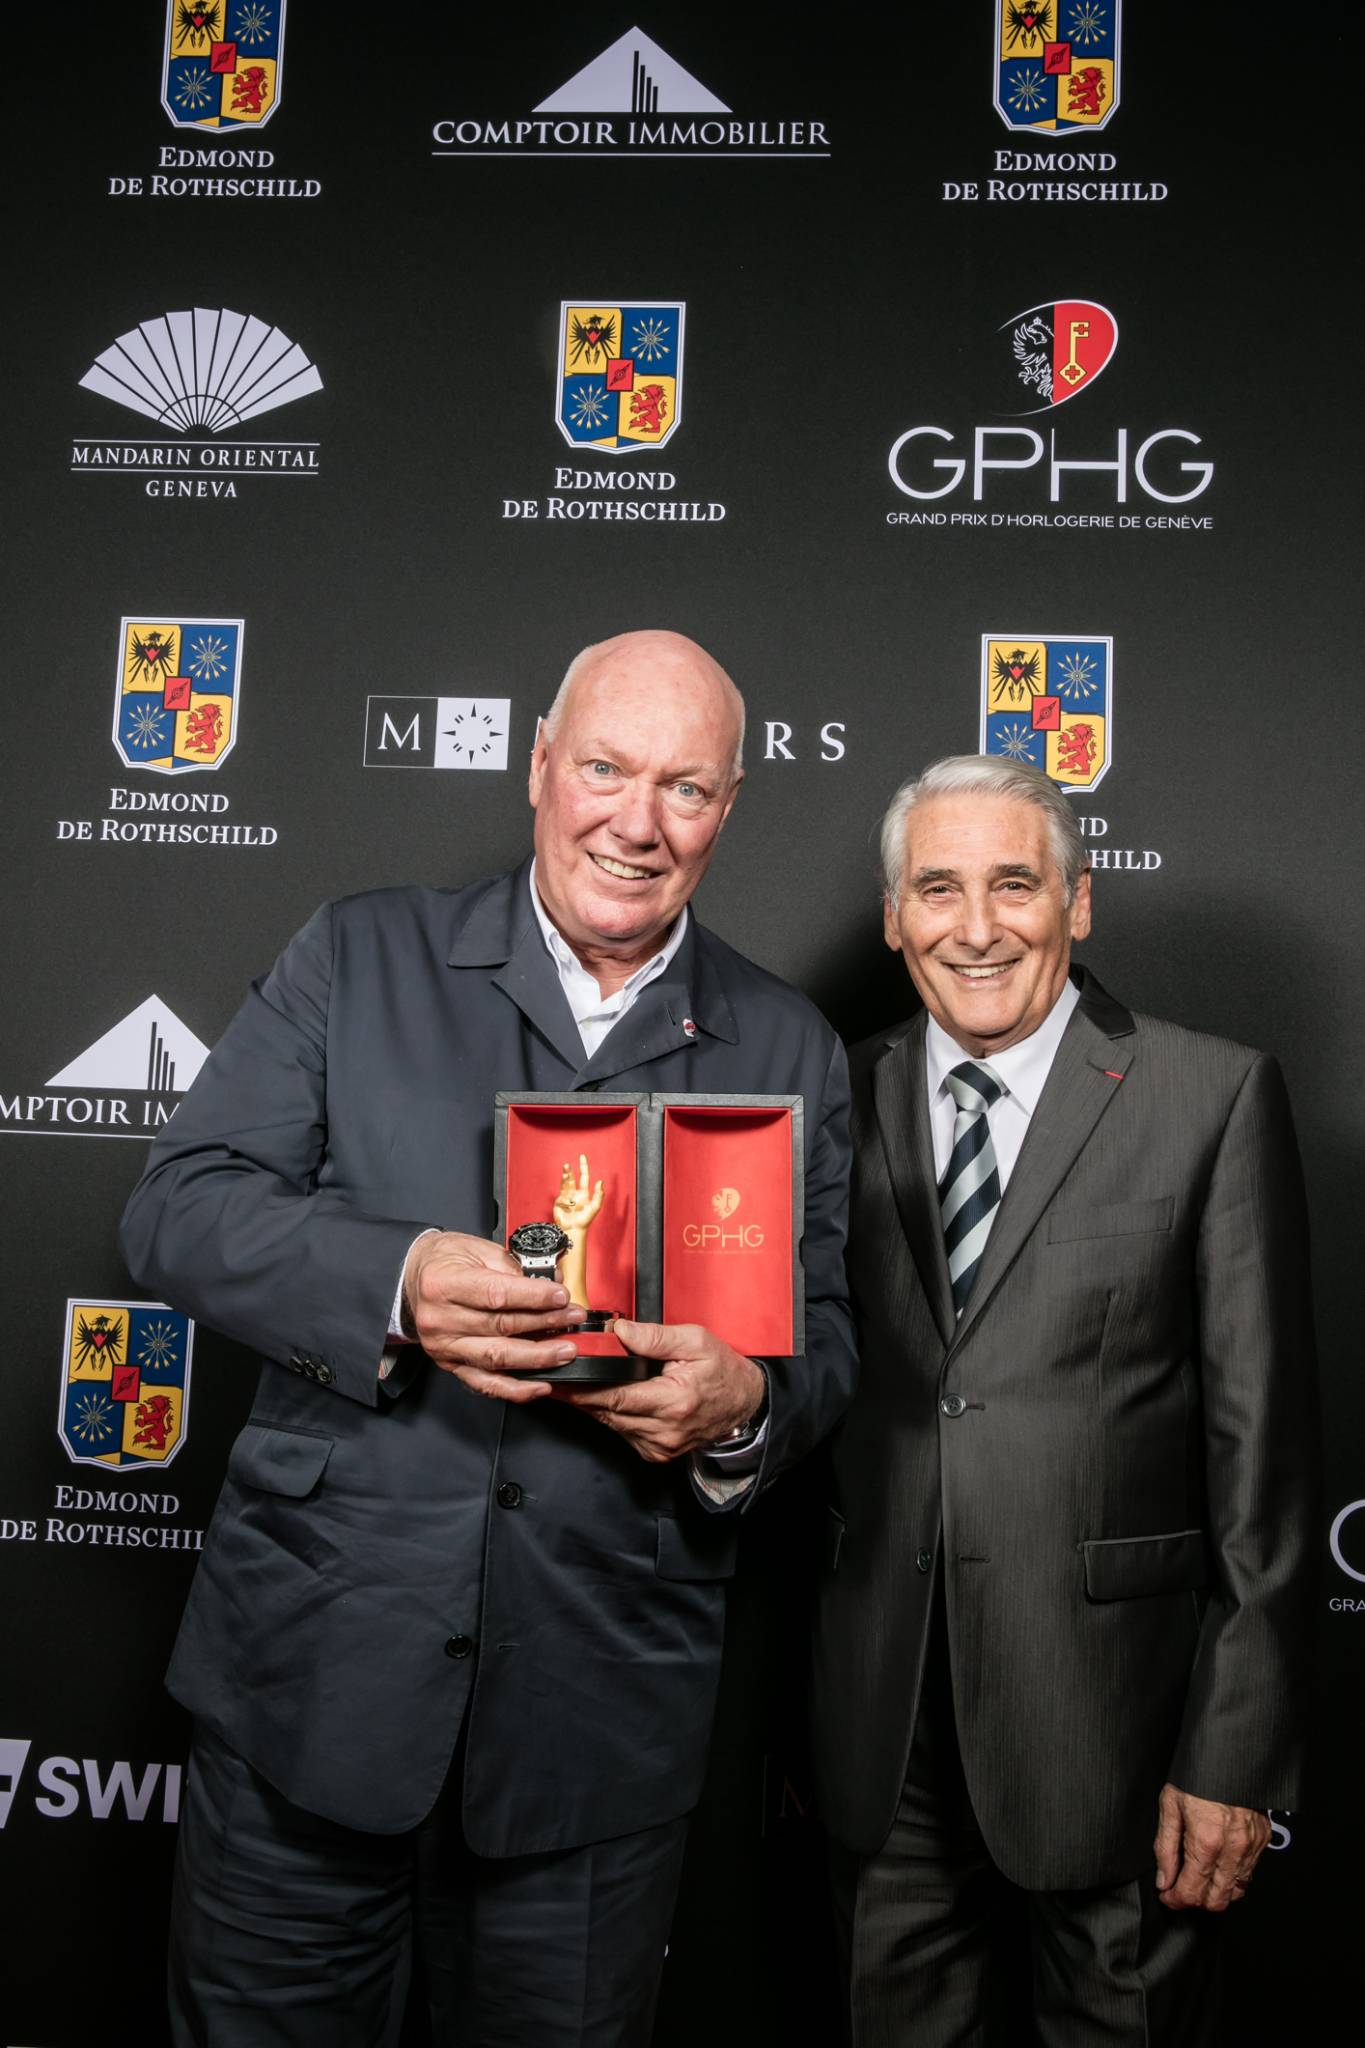 Jean-Claude Biver (President of the Watch Division of the LVMH Group and Chairman of Hublot, winner of the Ladies' Watch Prize 2015) and Carlo Lamprecht (President of the Foundation of the GPHG)